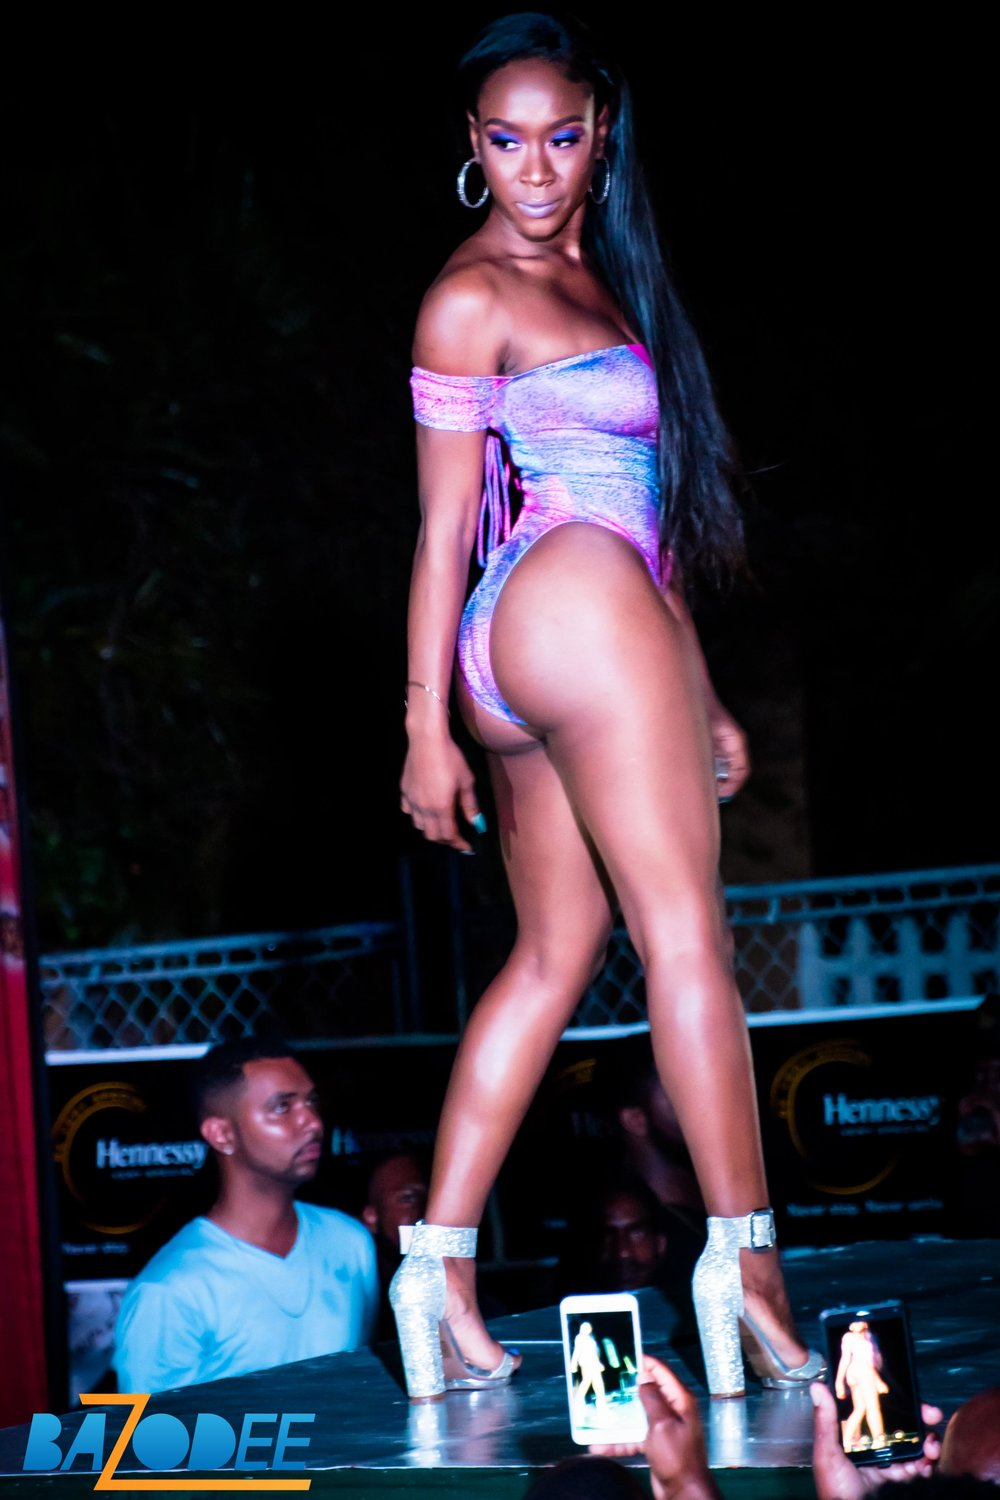 Allroadsleadtocropover erup the band voltagebd Image collections